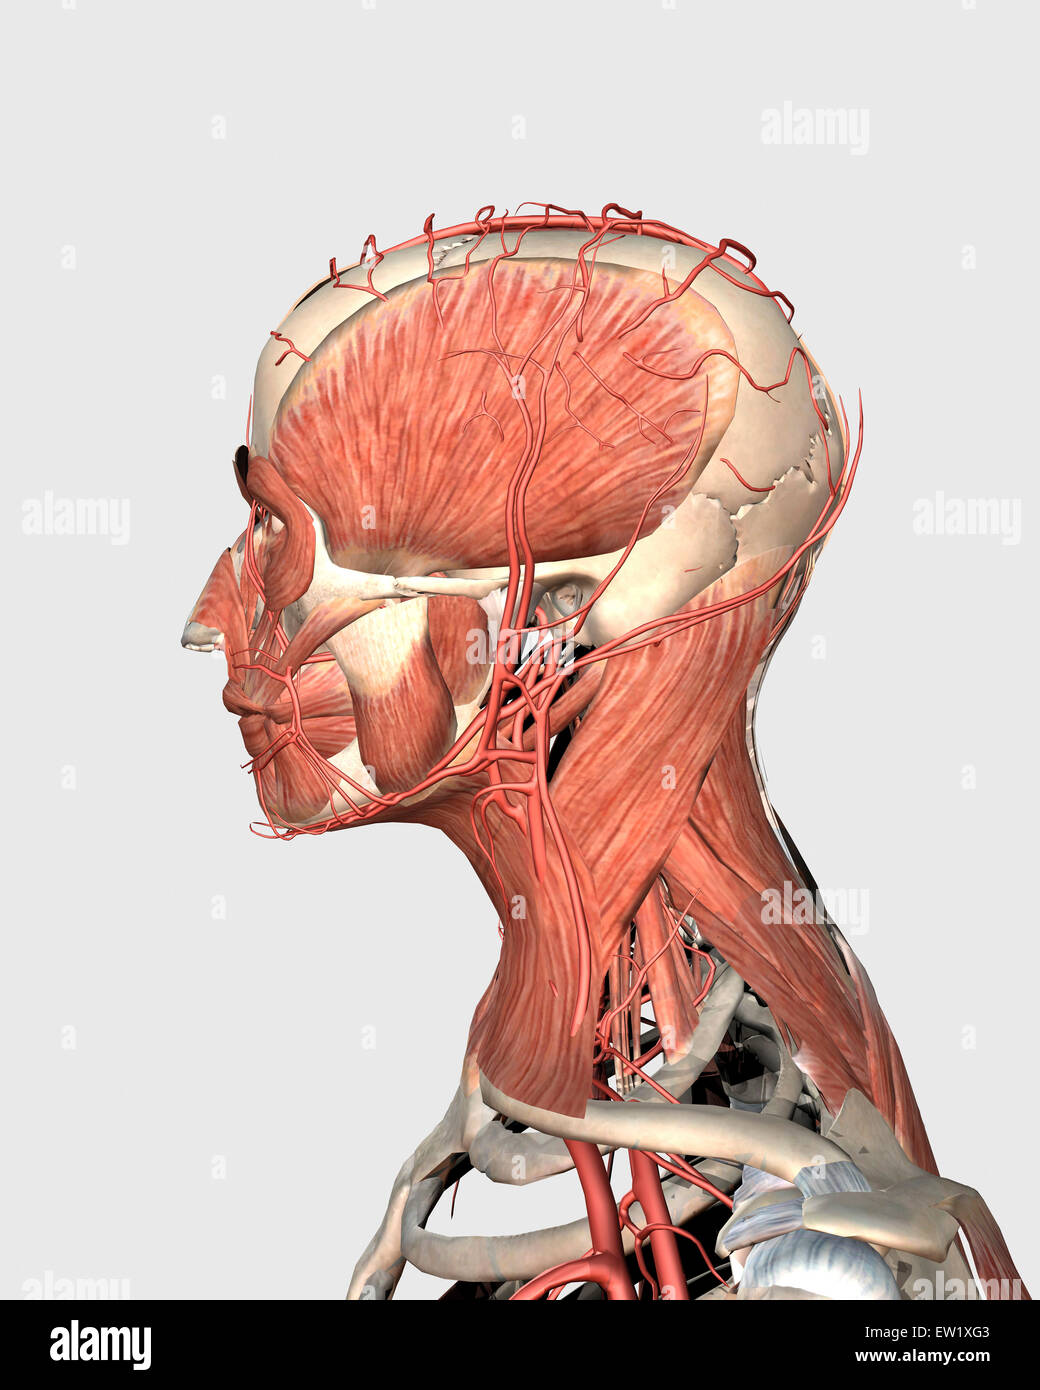 Image result for 3d model of a human head